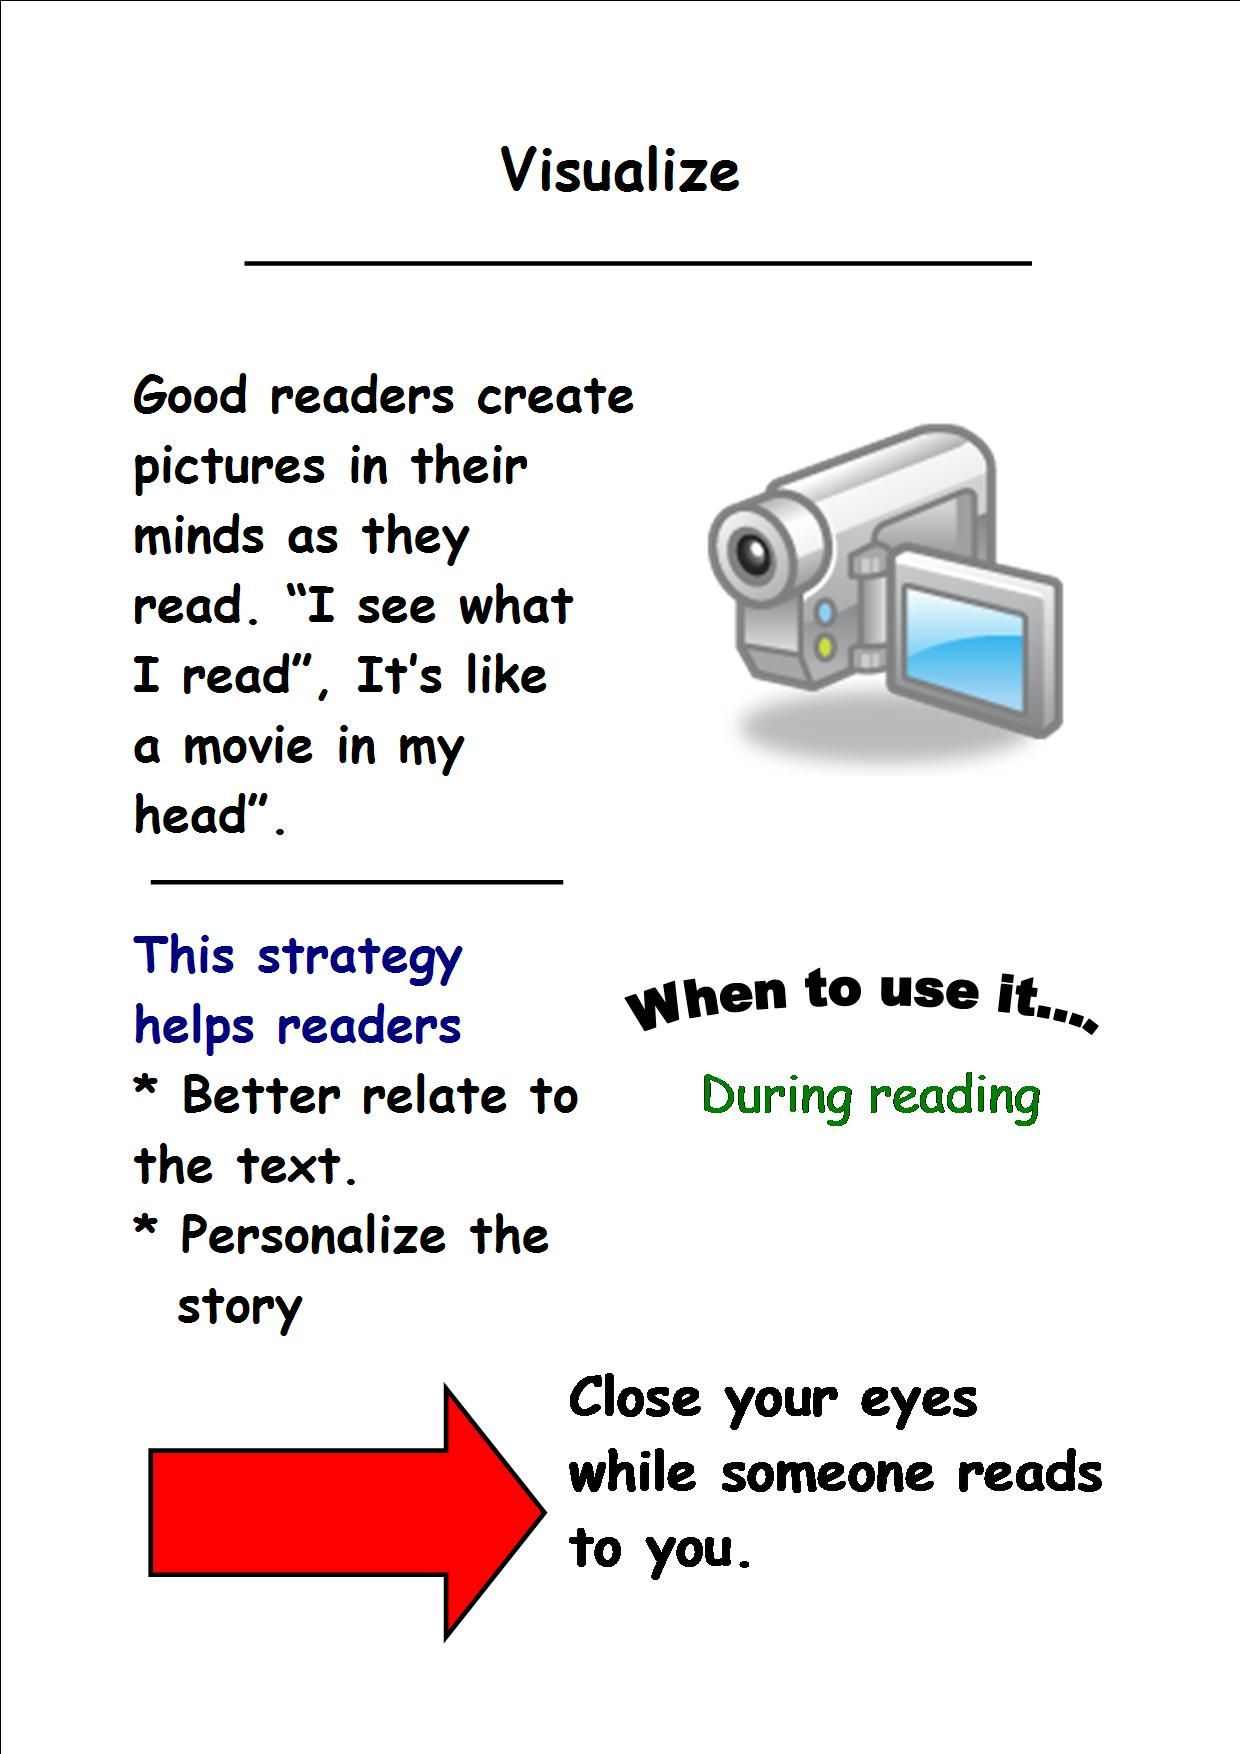 Essential Strategies For Children Developing Reading Comprehension Visualize To Experience